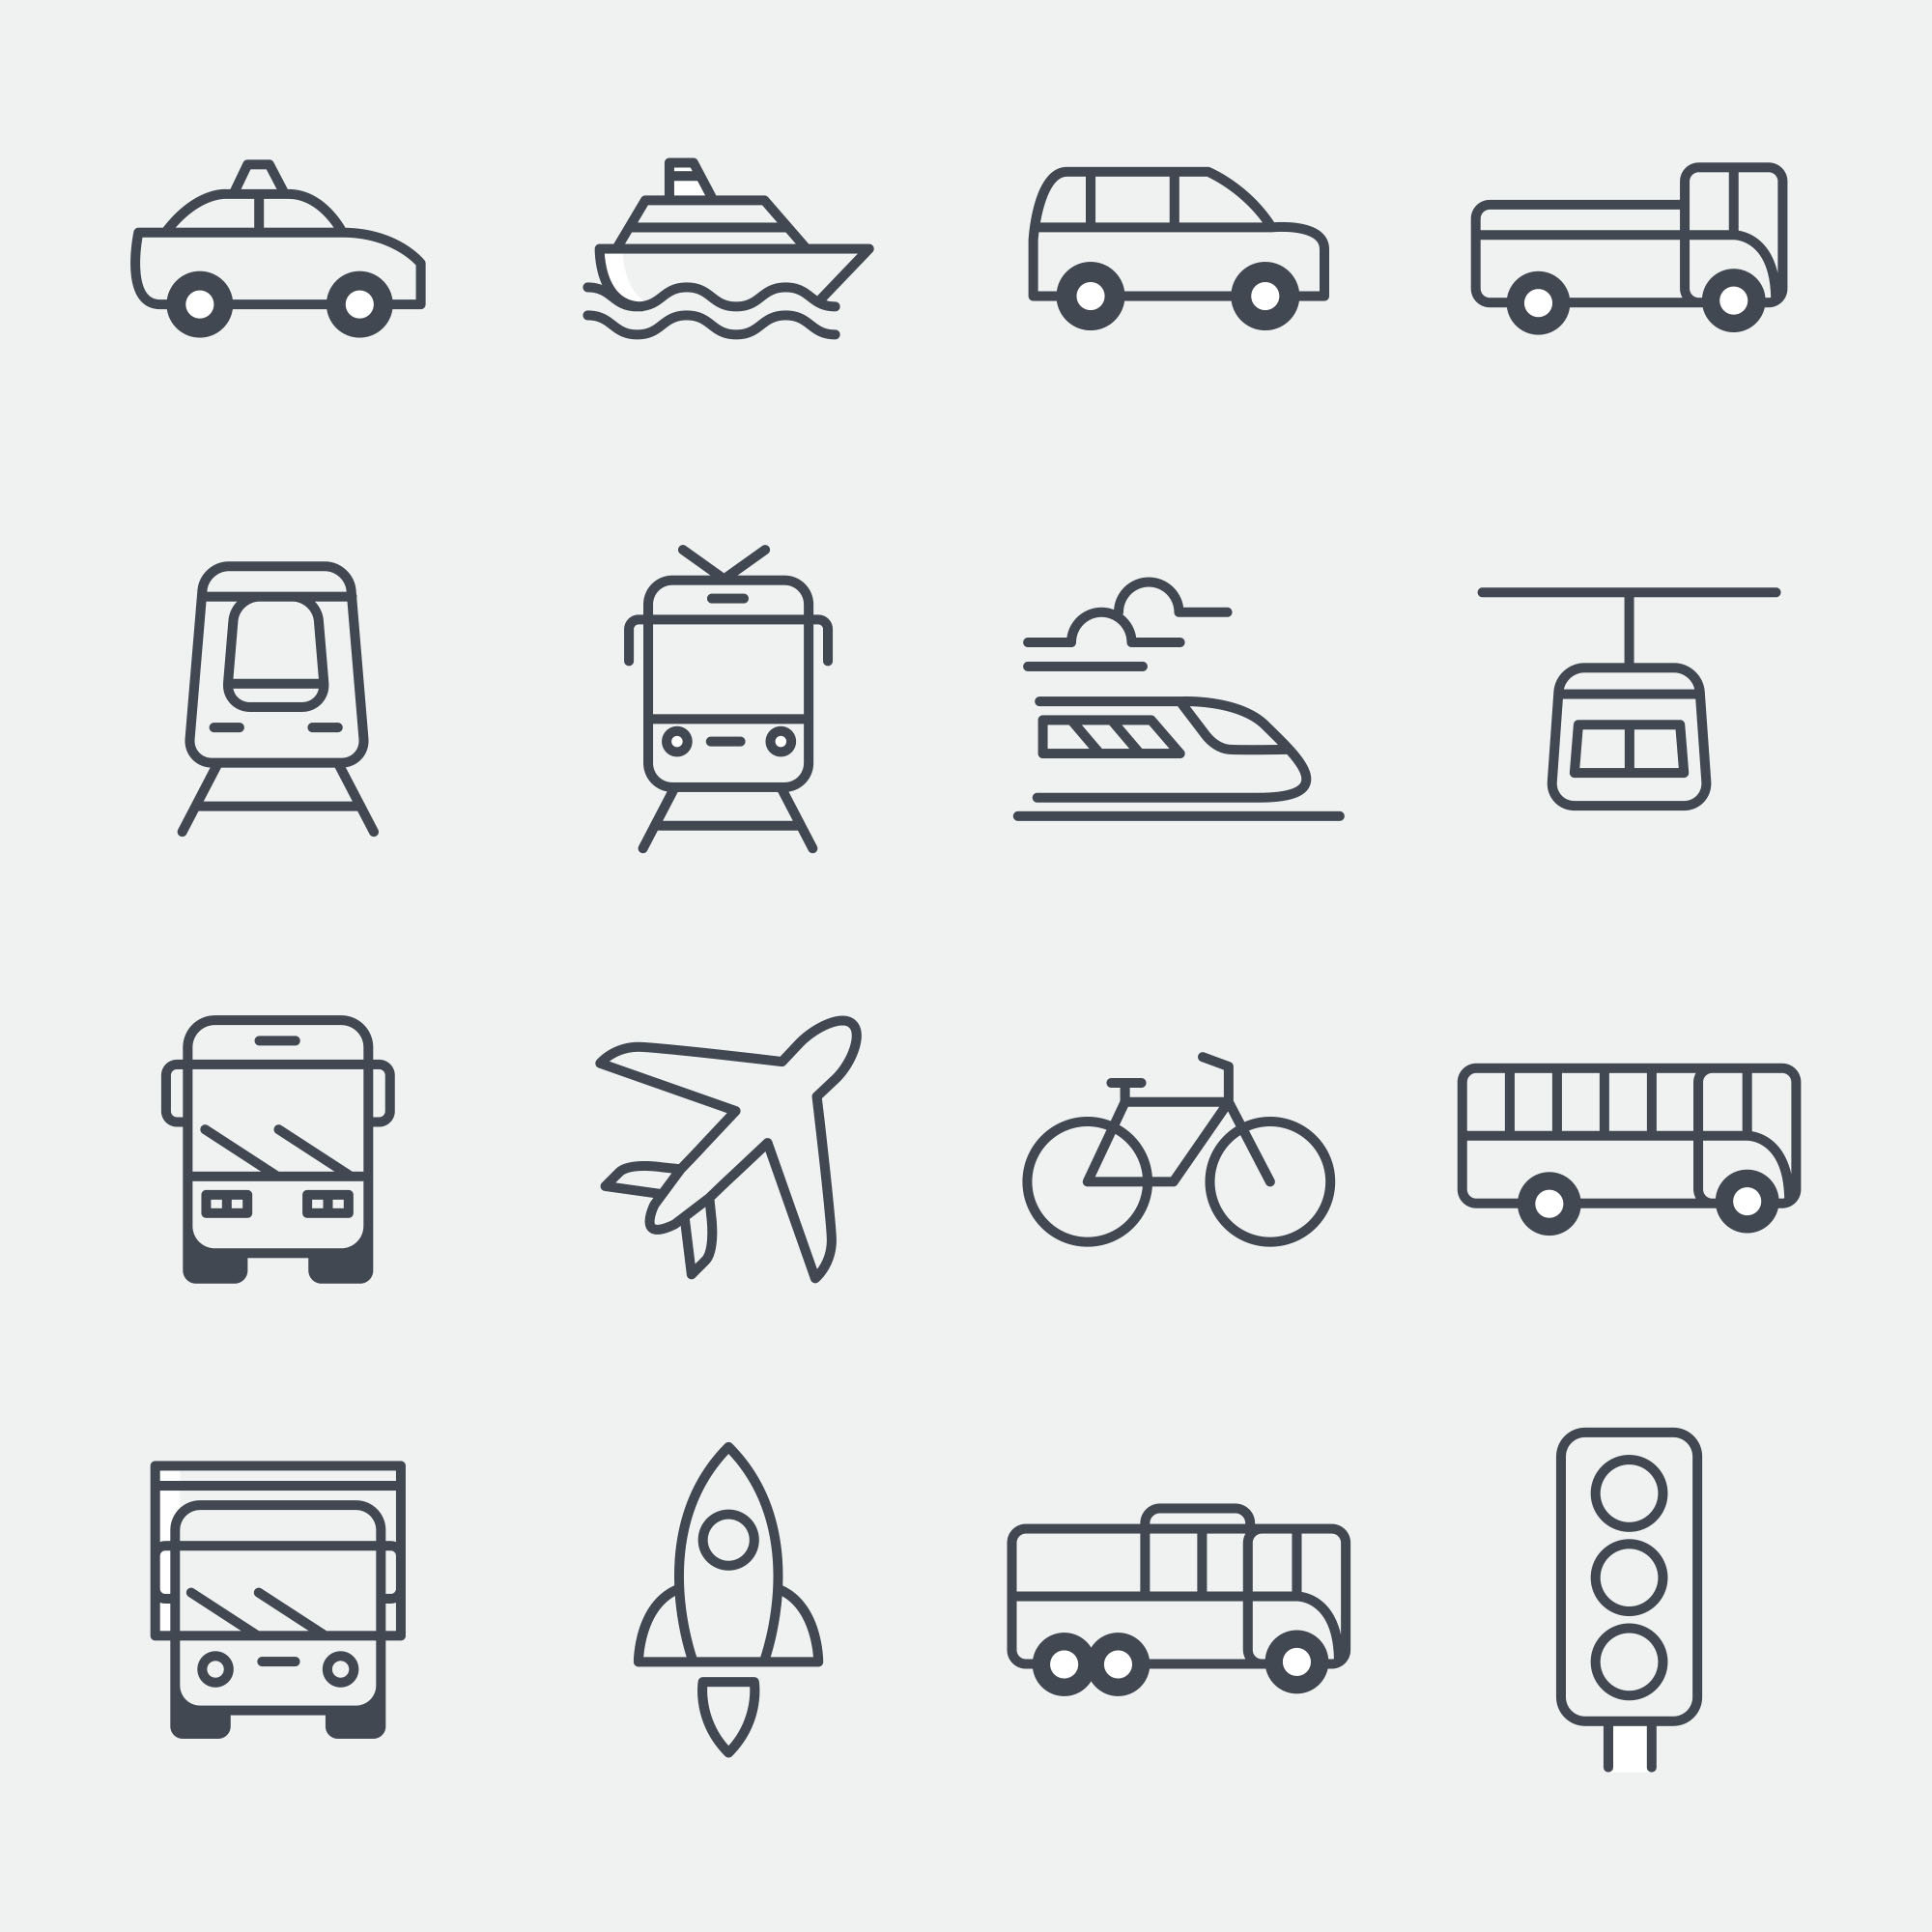 Transportation Vector Icons - Black & White